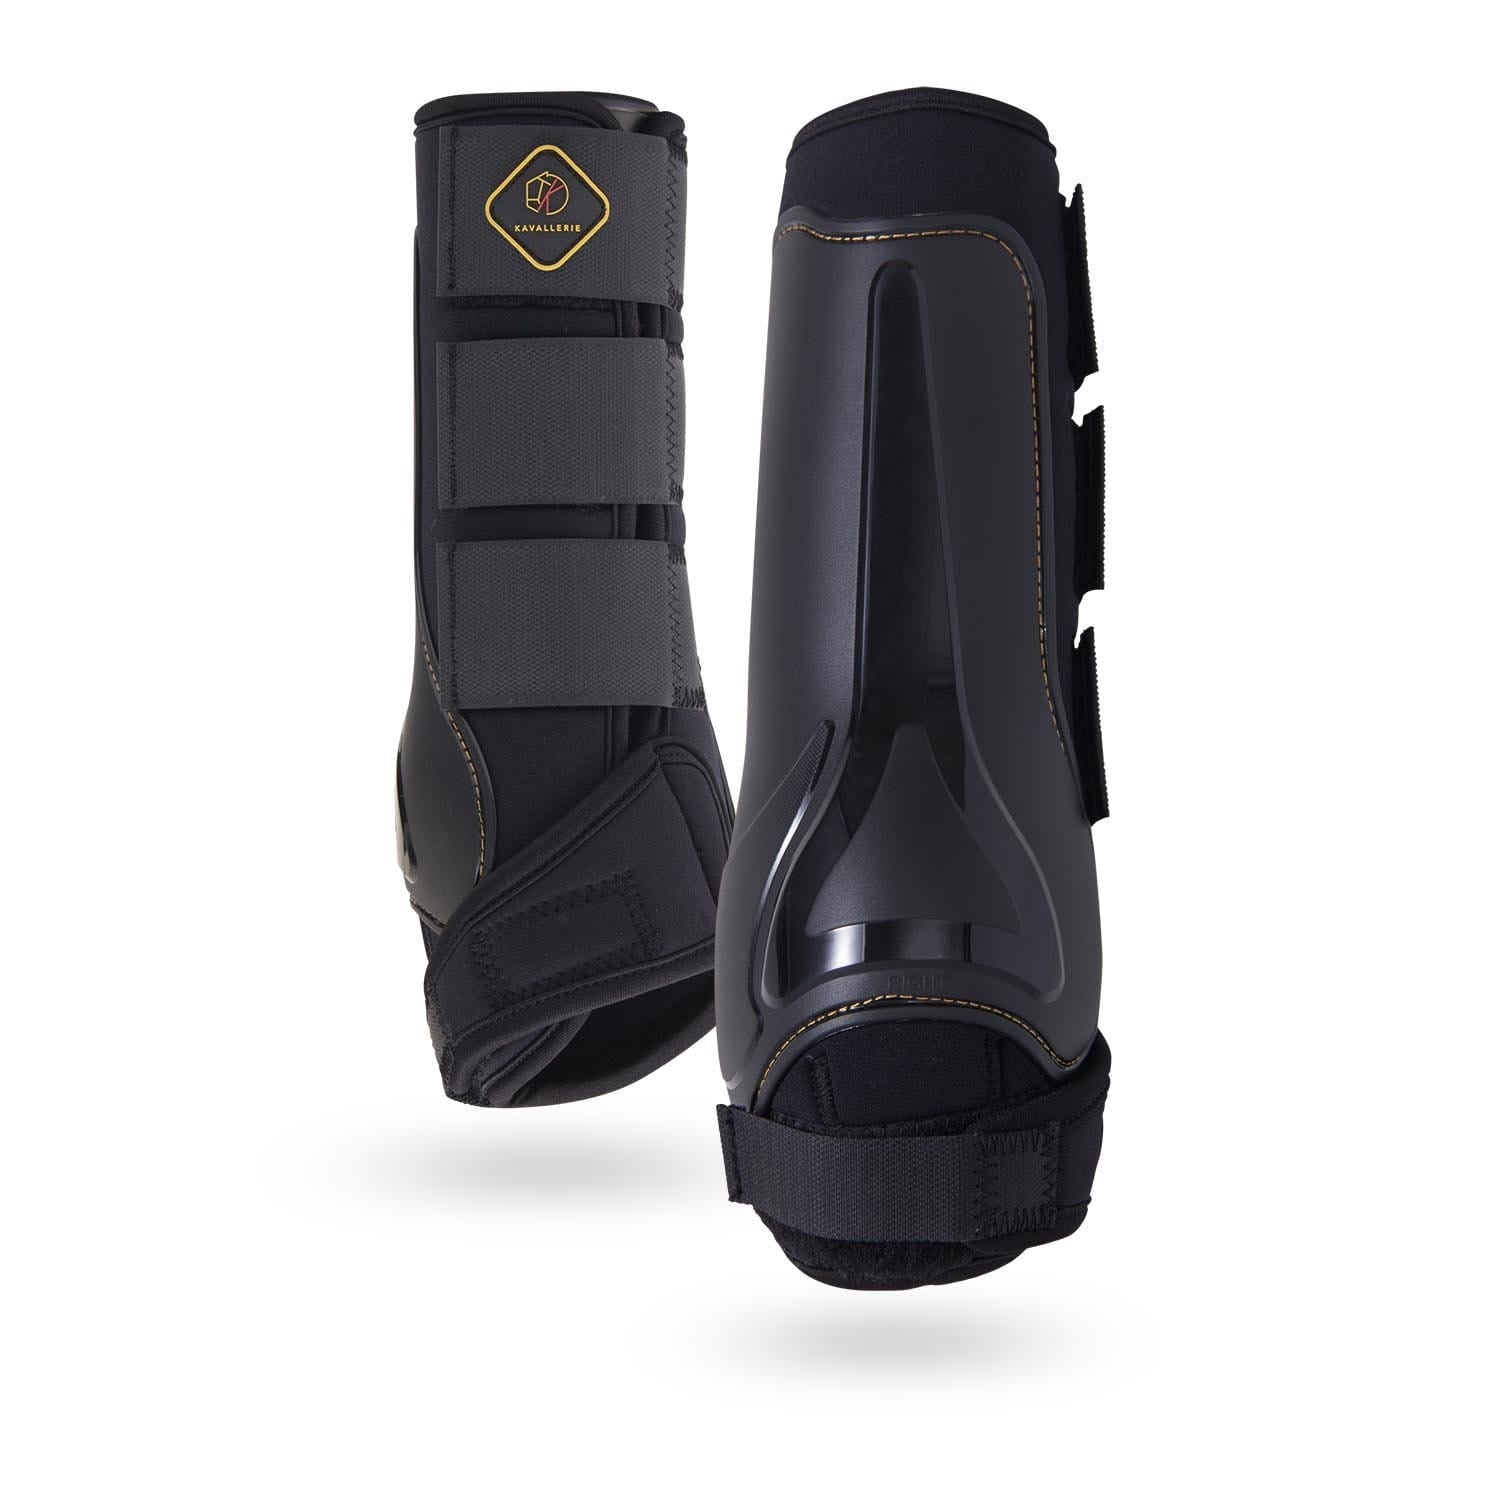 Pro-K Support Boots - Kavallerie